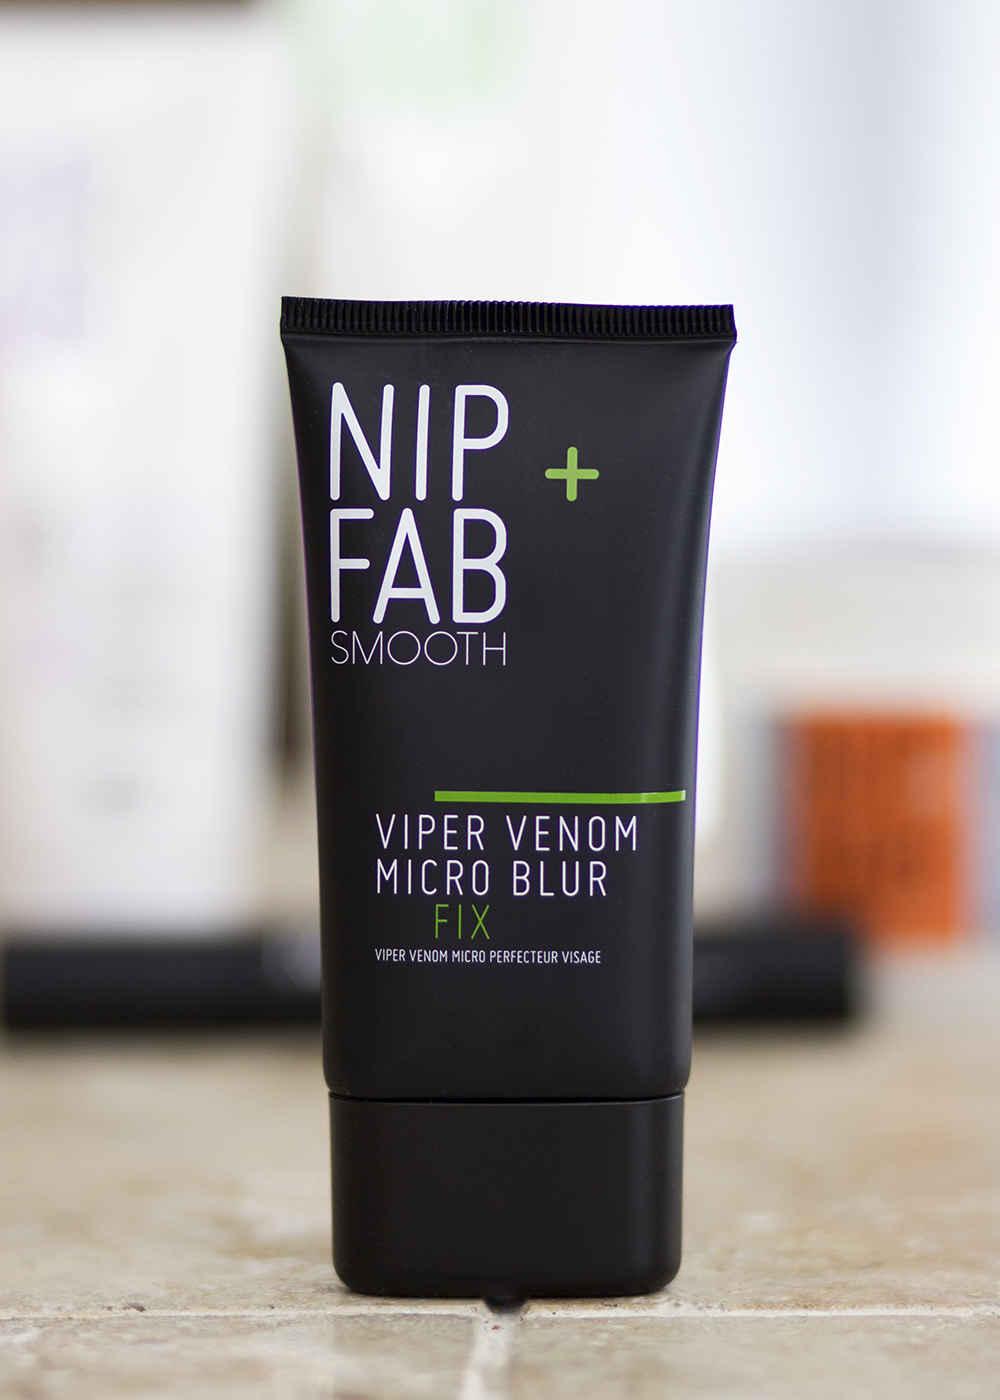 Rodial and Nip + Fab Beauty - Nip + Fab Smooth Viper Venom Micro Blur Fix - Rodial Nip Fab Beauty Review